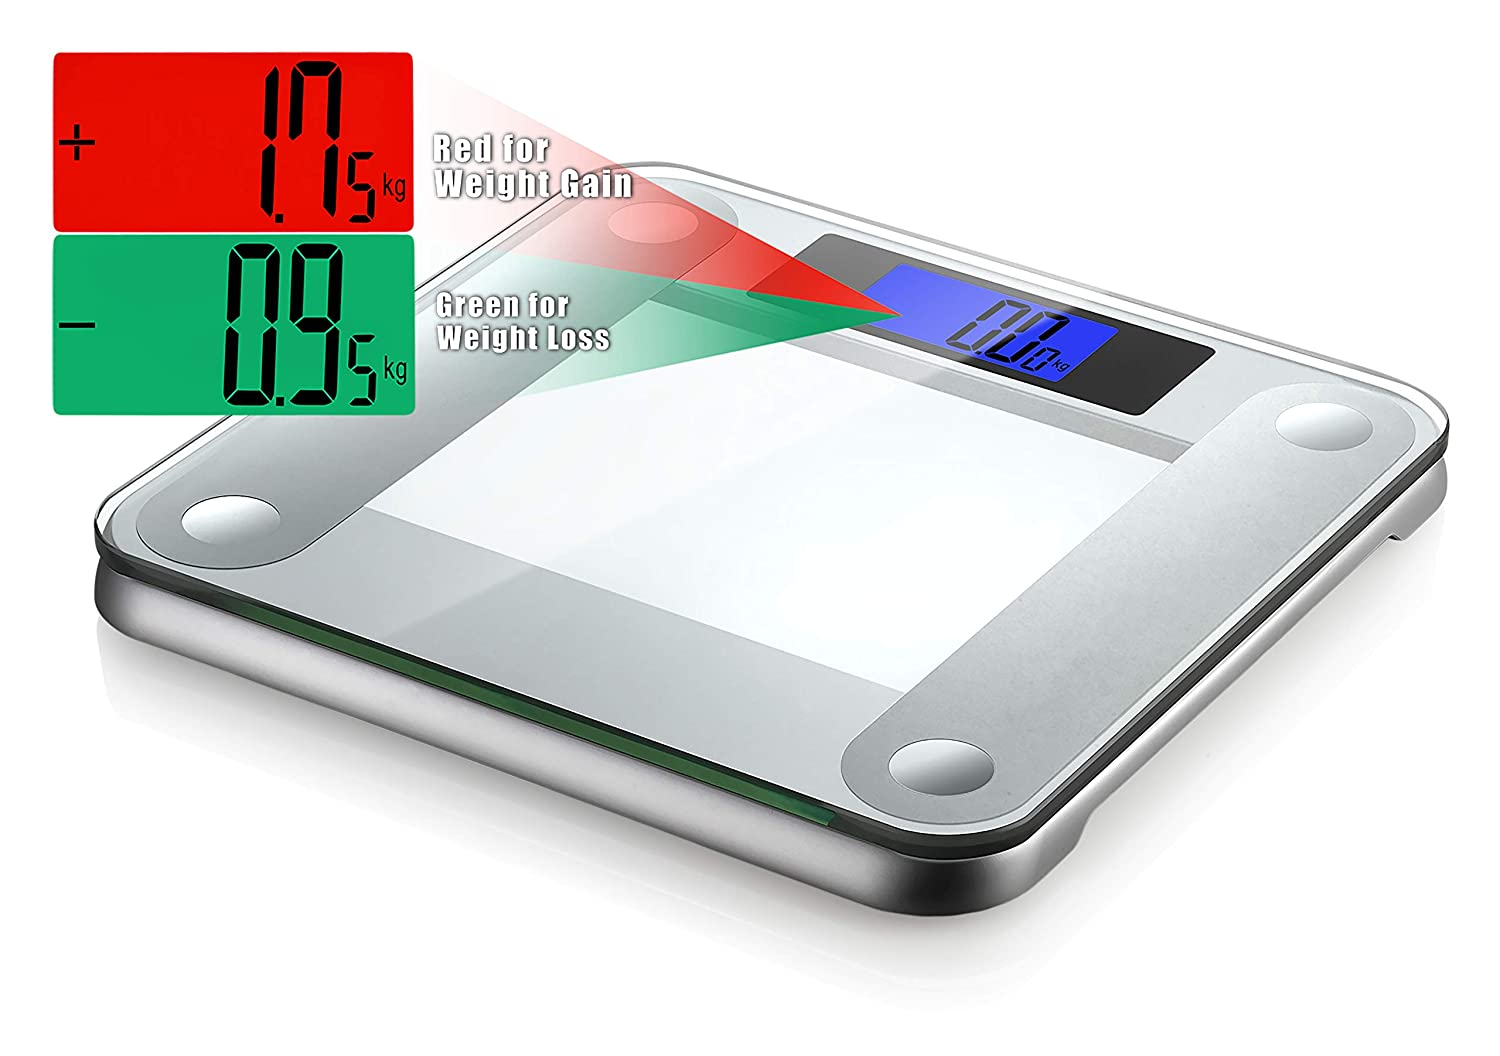 Ozeri Precision II 440 Lbs 200 Kg Bath Scale With 50g Sensor Technology 0.1 Lbs 0.05 kg Weight Change Detection